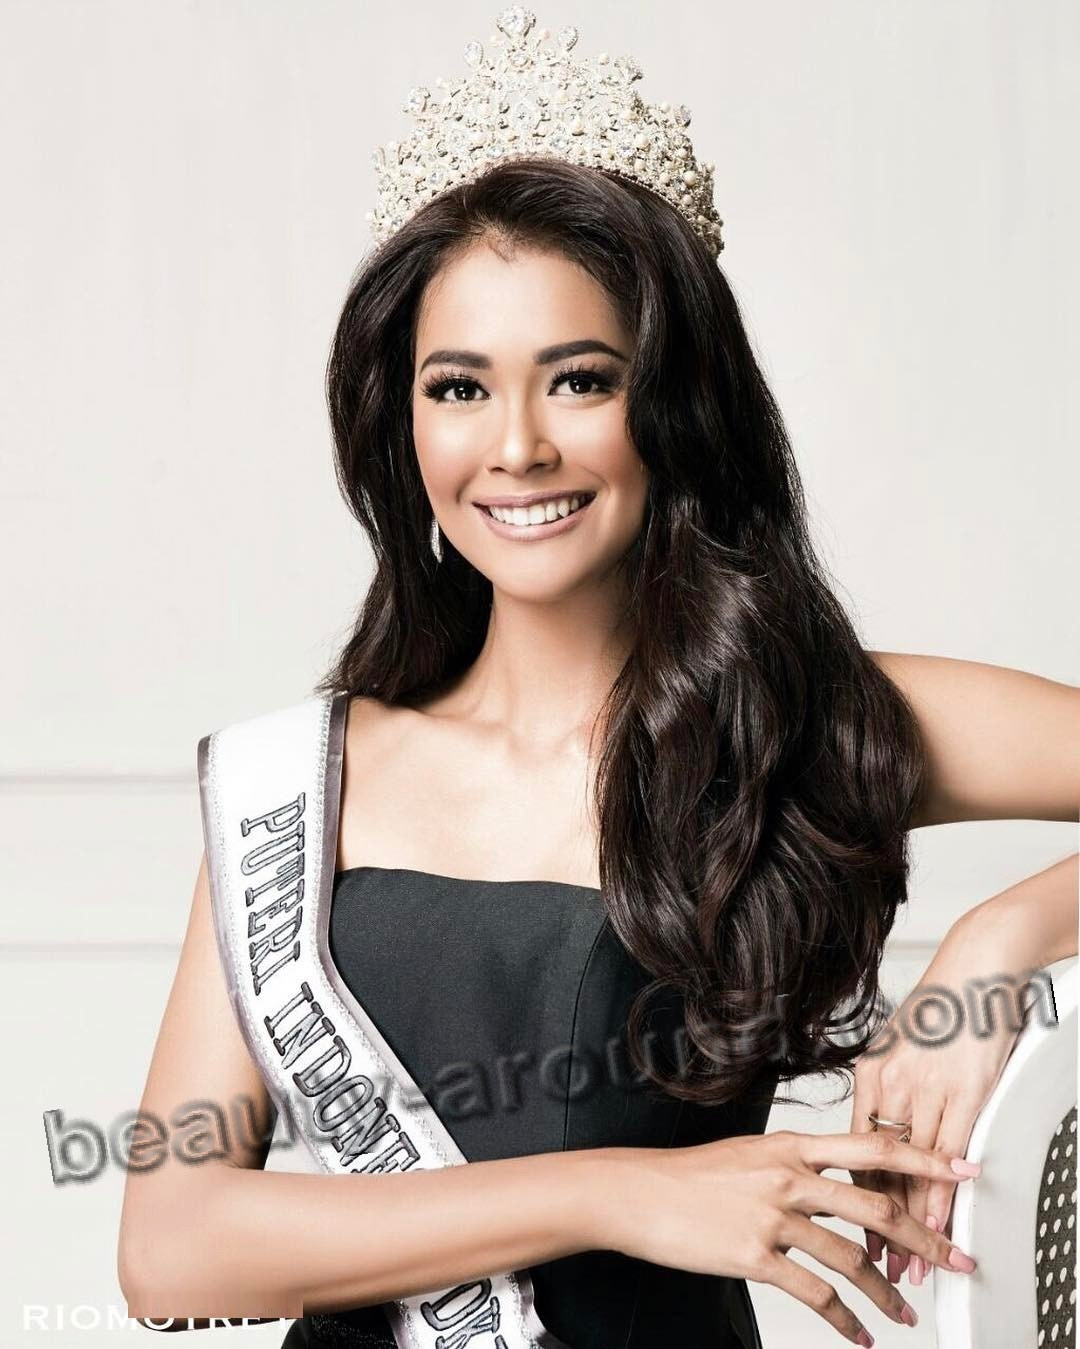 Miss Indonesia 2017 Bunga Jelitha photo